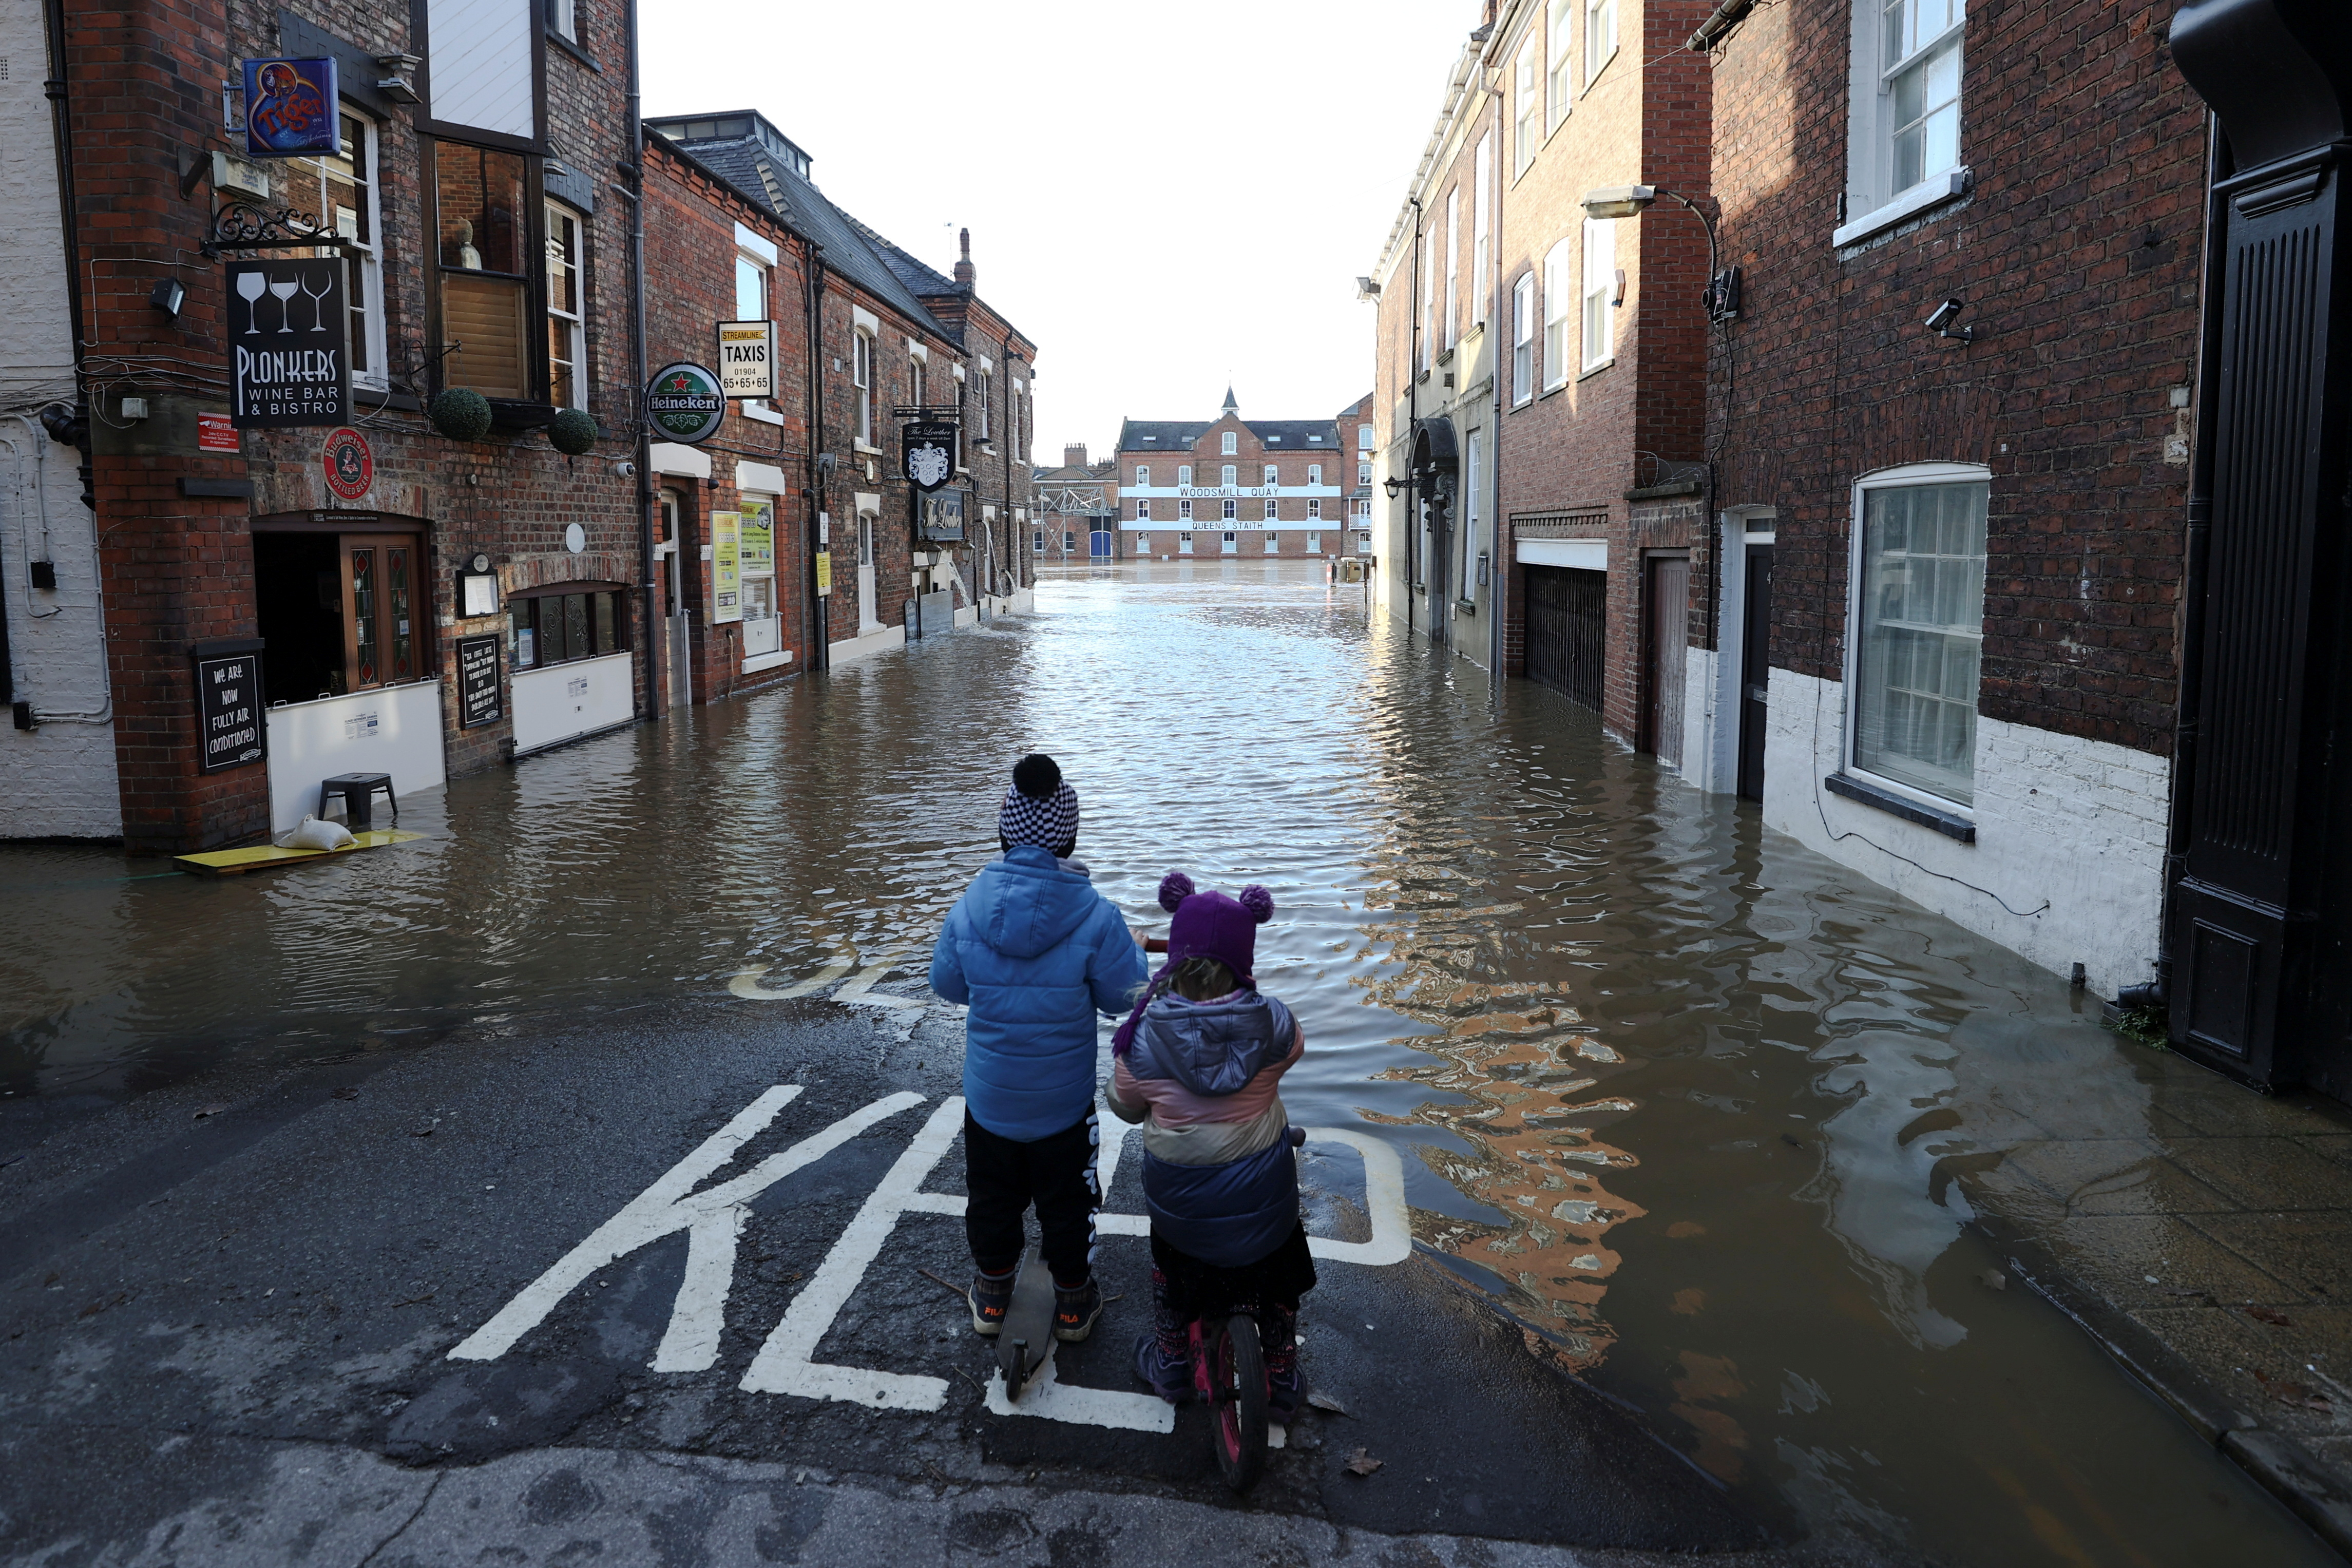 Two children stand on a partially flooded street after the River Ouse burst banks in York, Britain, January 22, 2021. REUTERS/Lee Smith